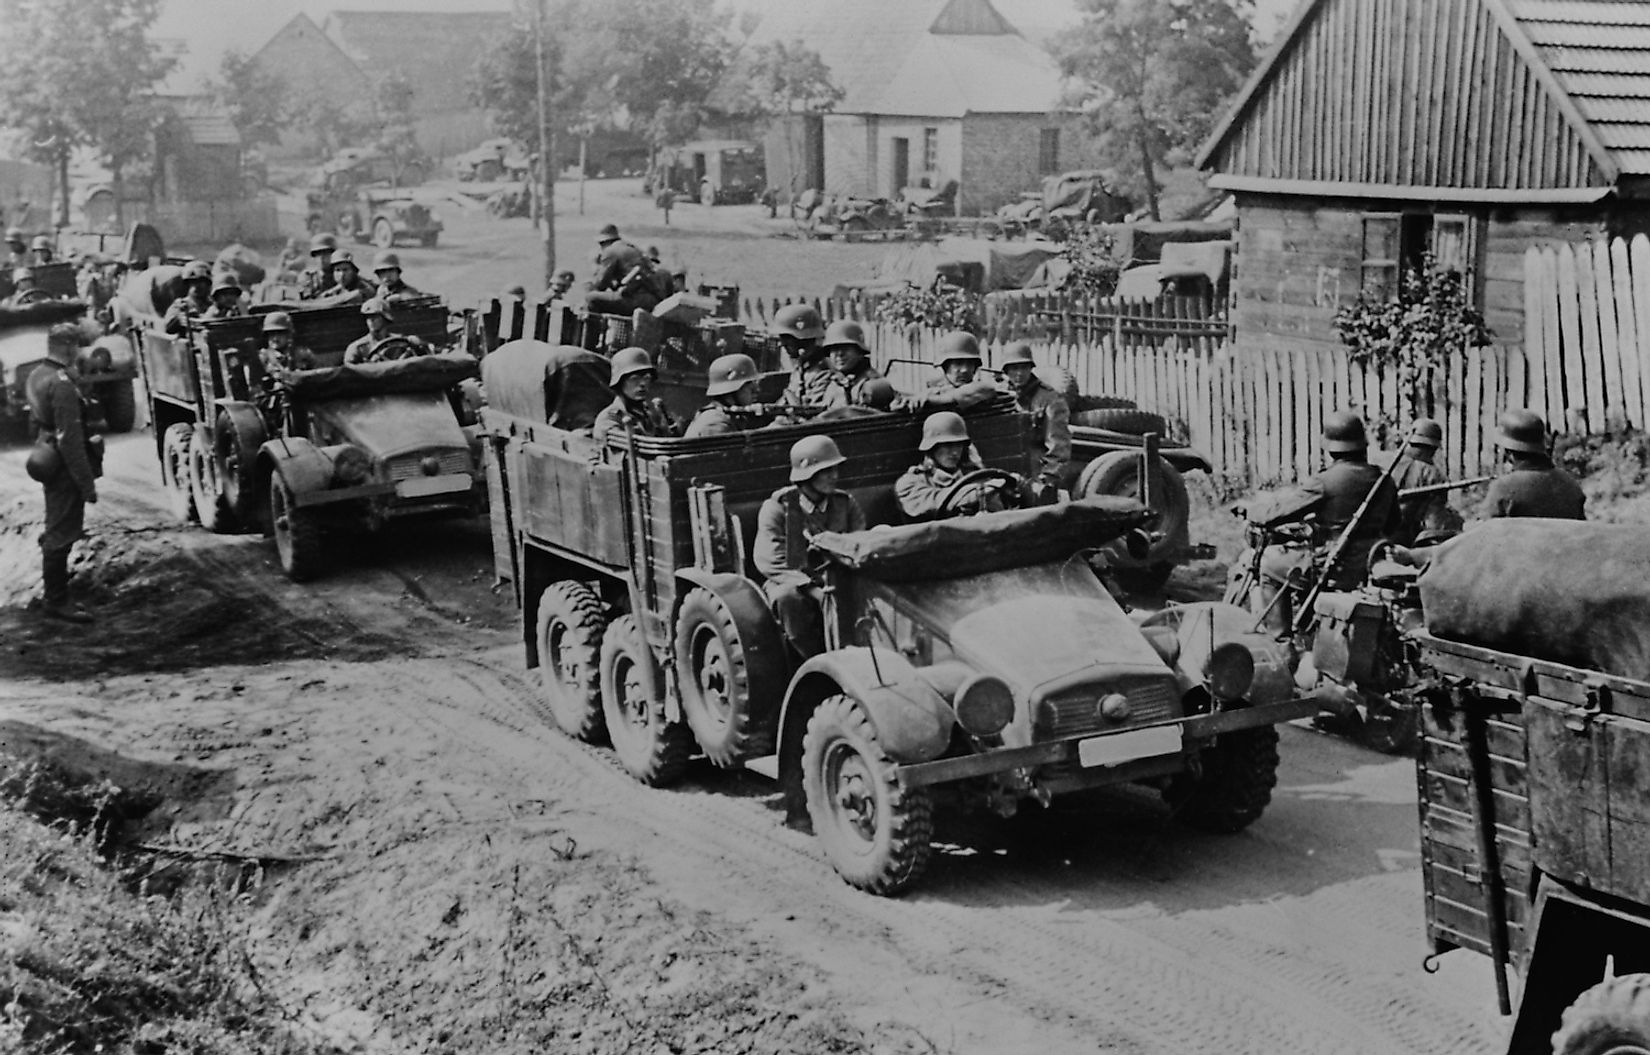 German soldiers invade Poland in armored and motorized divisions in Sept. 1939. It was the beginning of World War 2. in Europe. Image credit: Everett Historical/Shutterstock.com